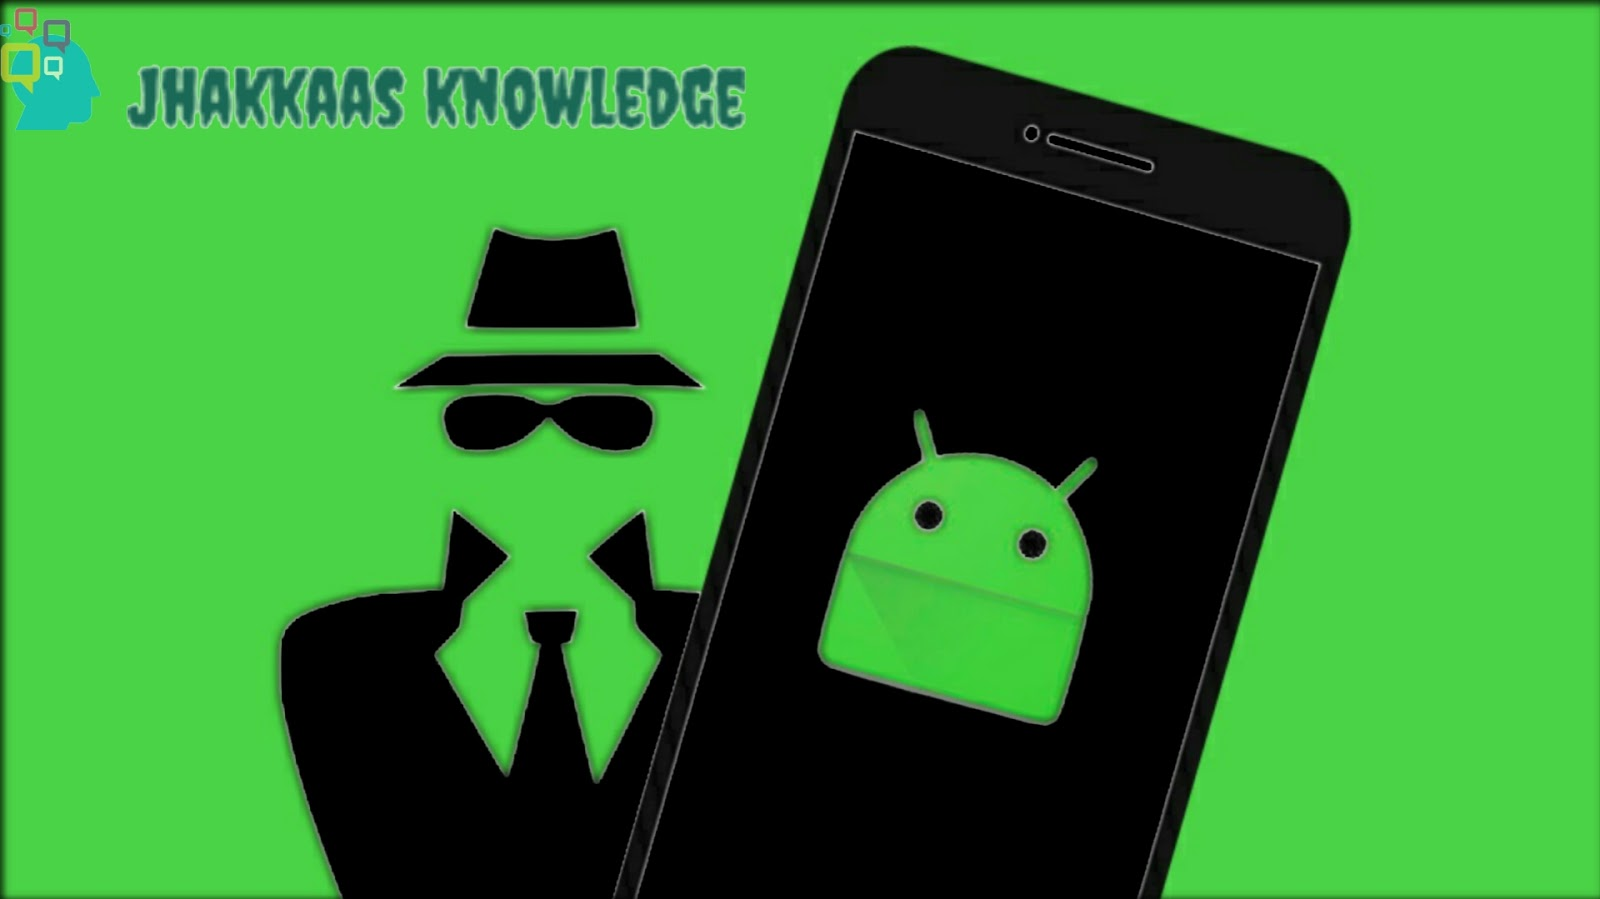 Jhakkaas Knowledge: 15 Best Free Hacking Apps For Android